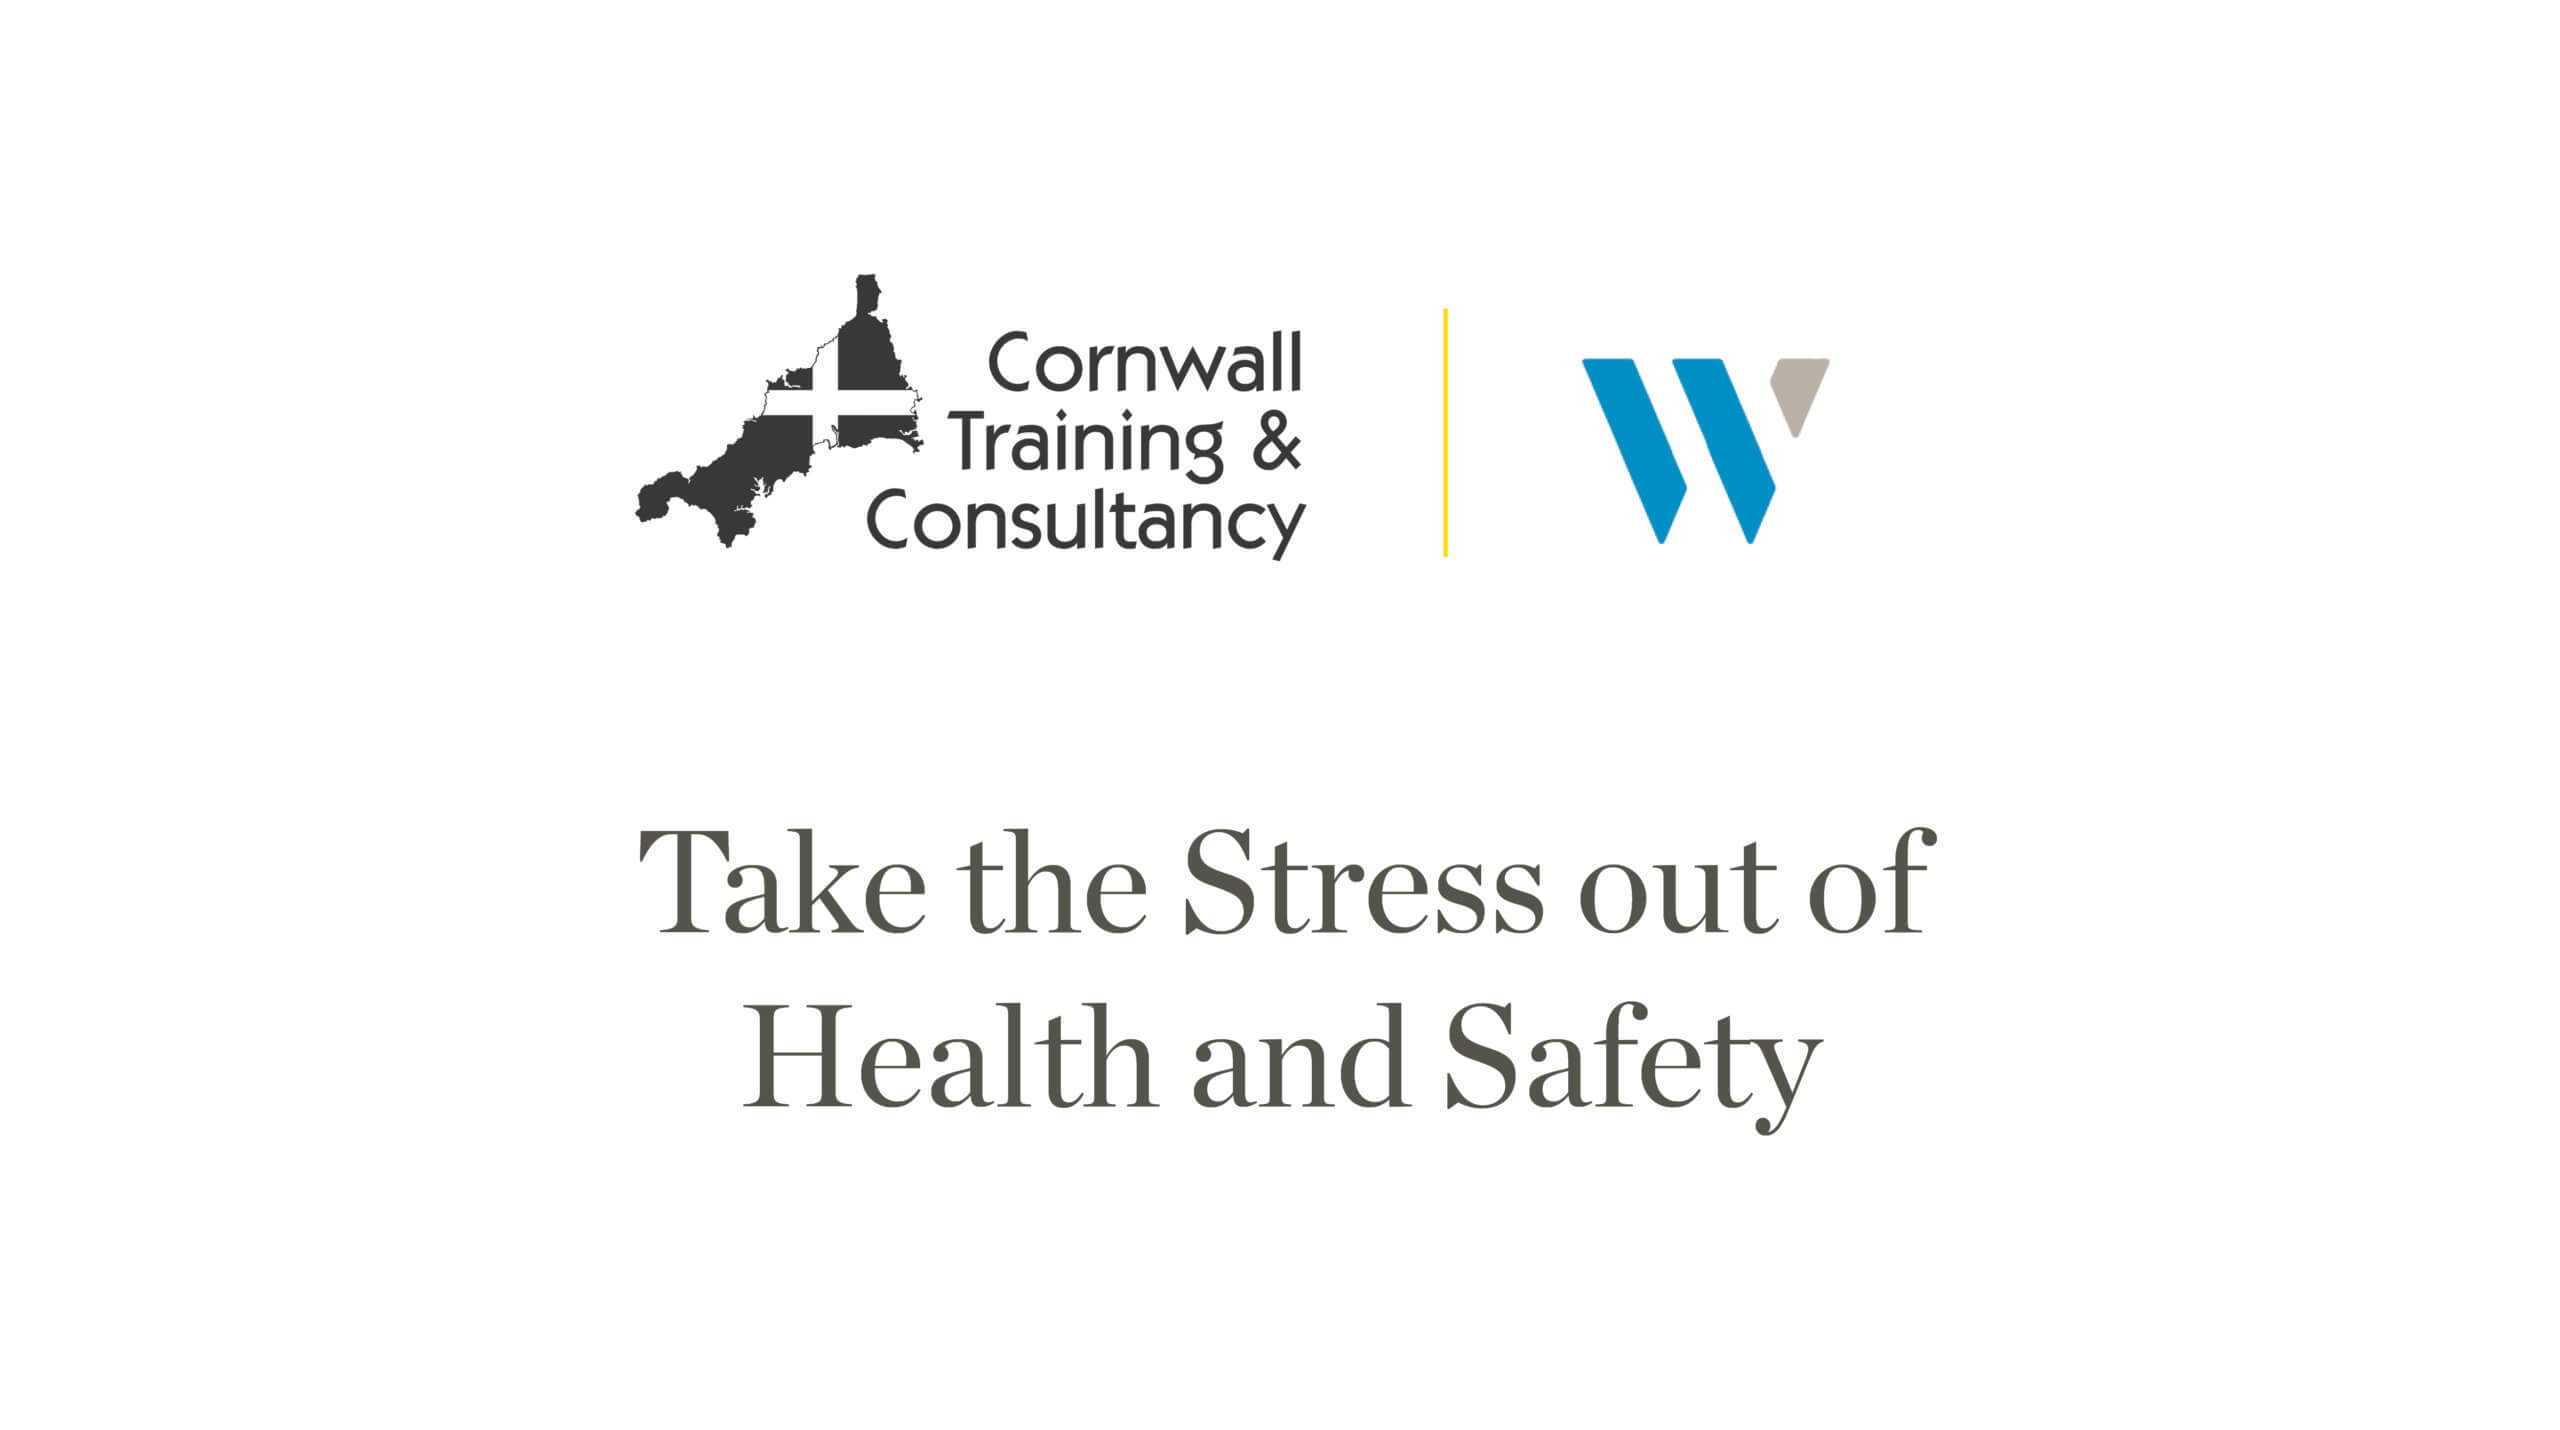 Take the Stress out of Health and Safety